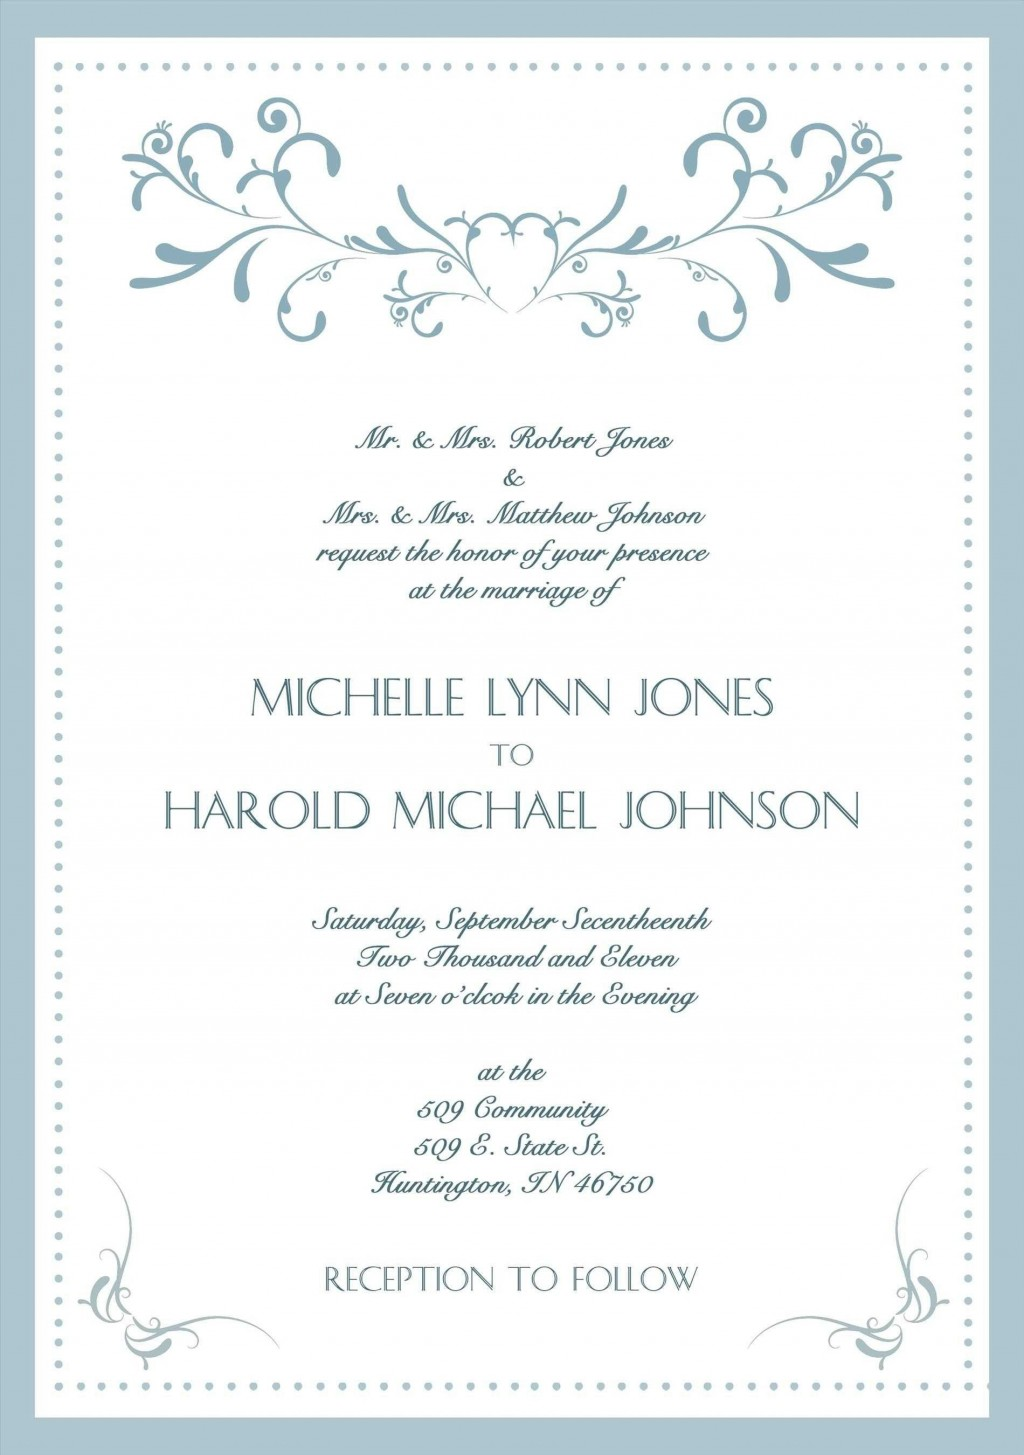 002 Stunning Formal Wedding Invitation Template High Resolution  Templates Email Format Wording FreeLarge